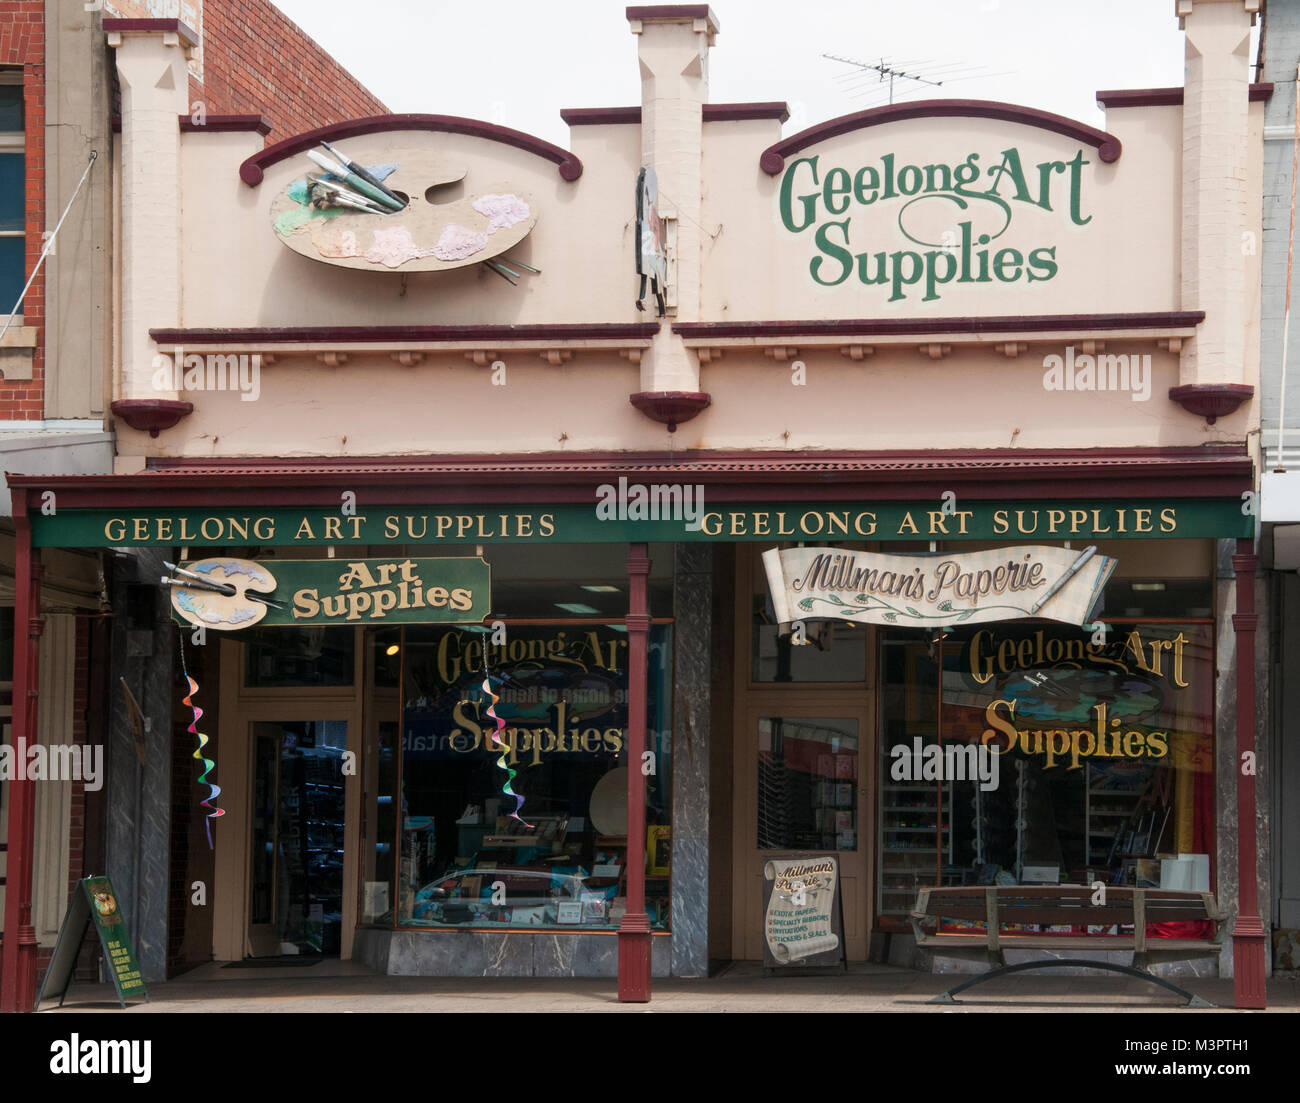 Geelong Art Supplies store occupies one of a group of heritage commercial buildings on Ryrie Street, Geelong, Victoria, Stock Photo